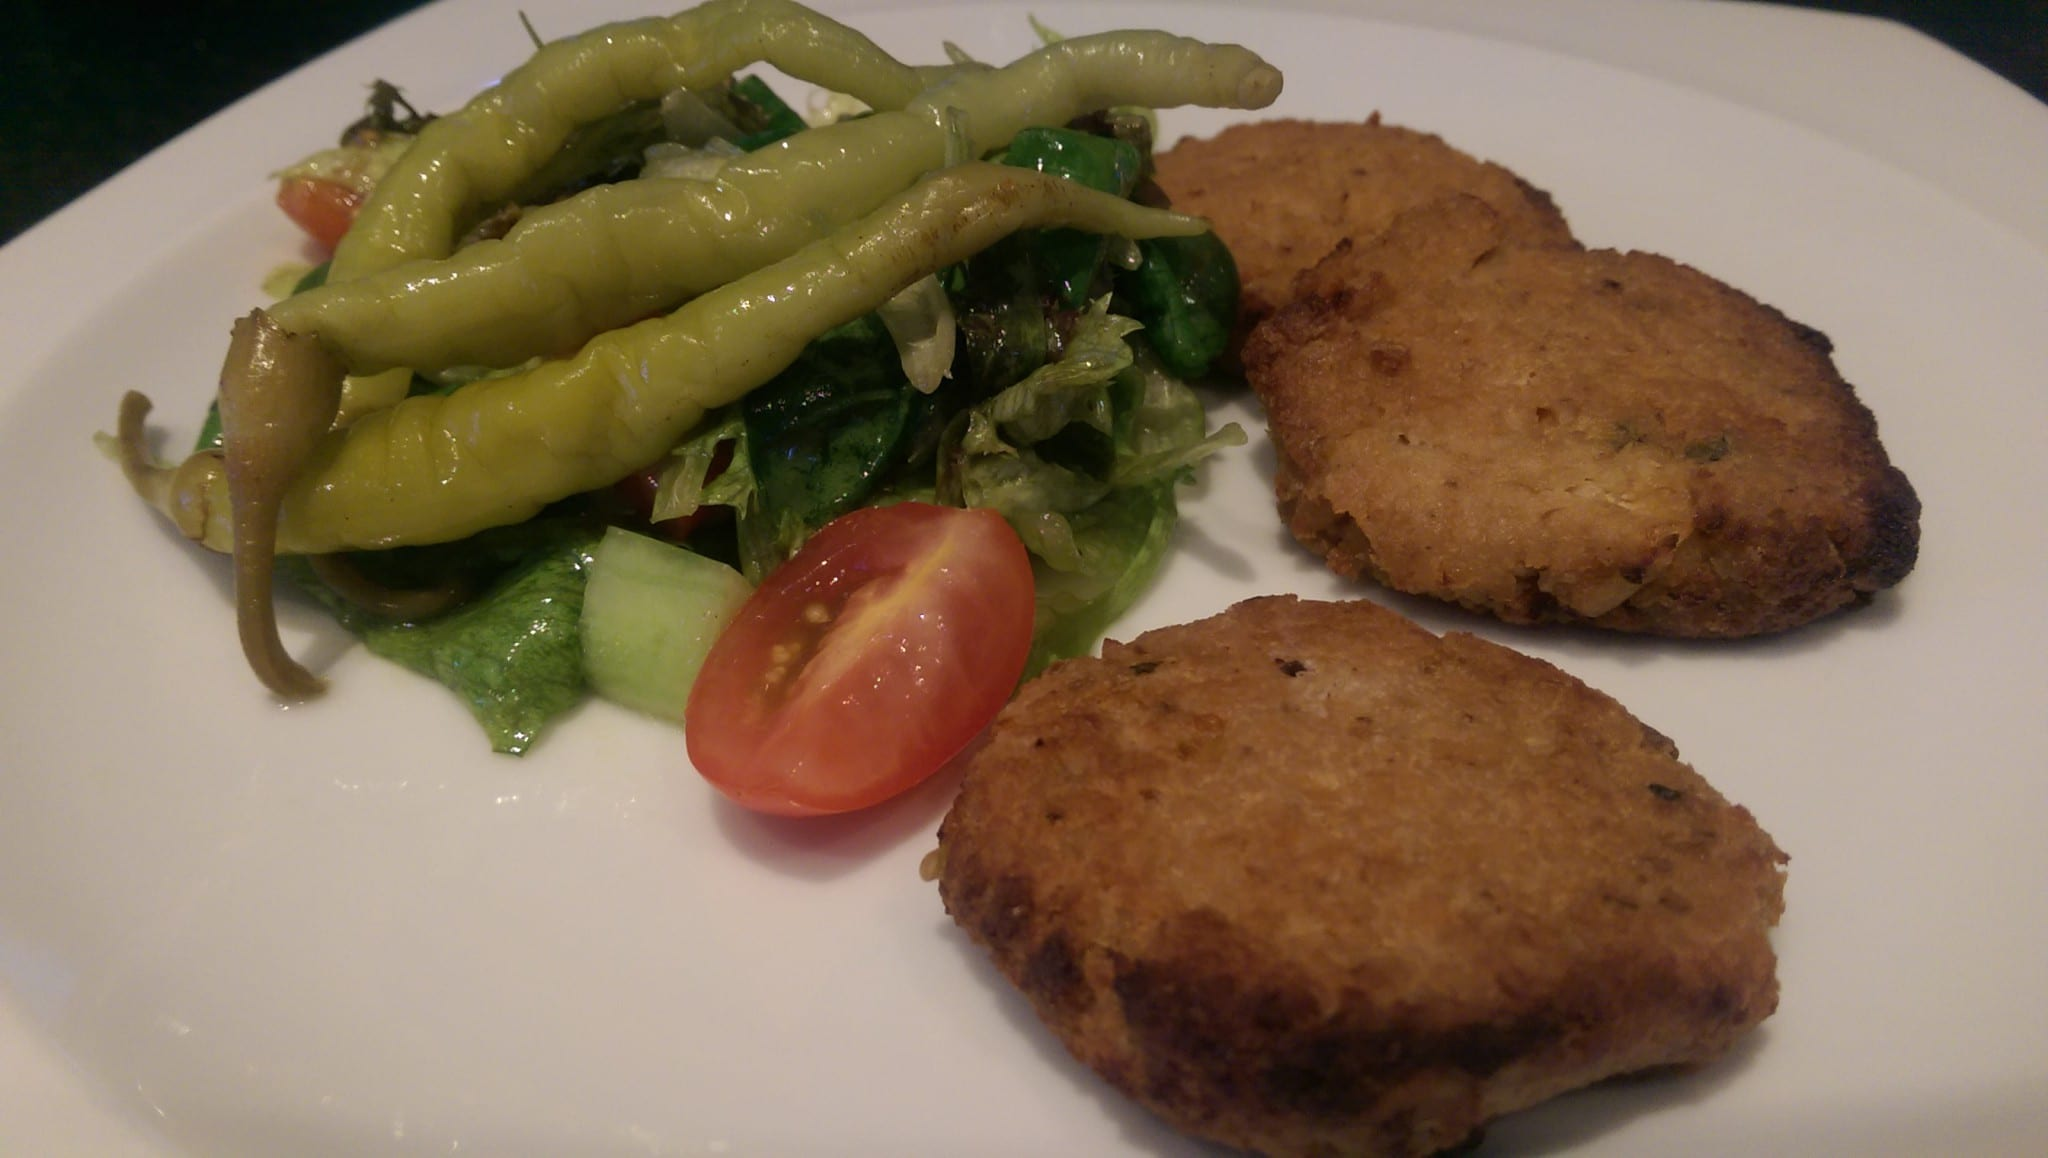 cooked veggie patties with pickled peppers and salad